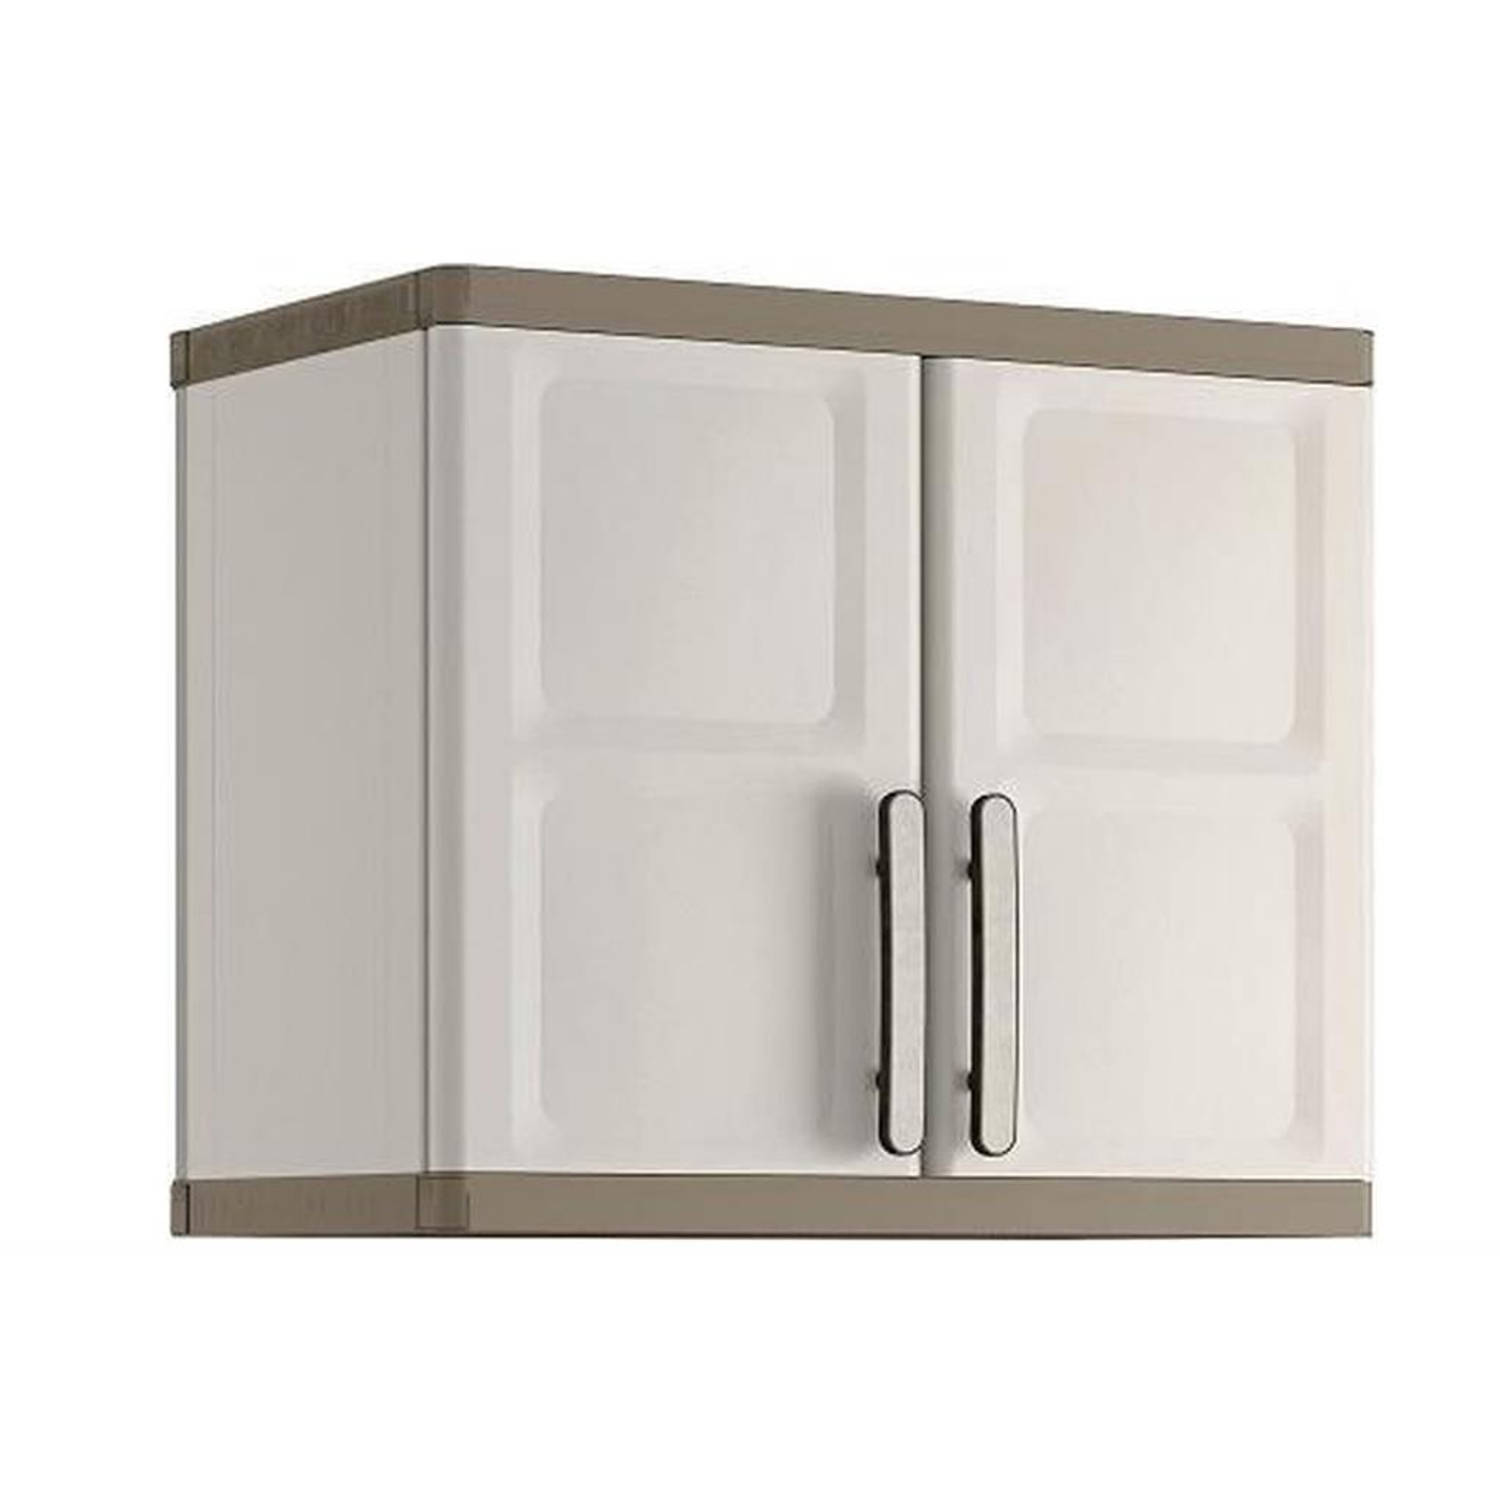 KIS Excellence Wall Cabinet